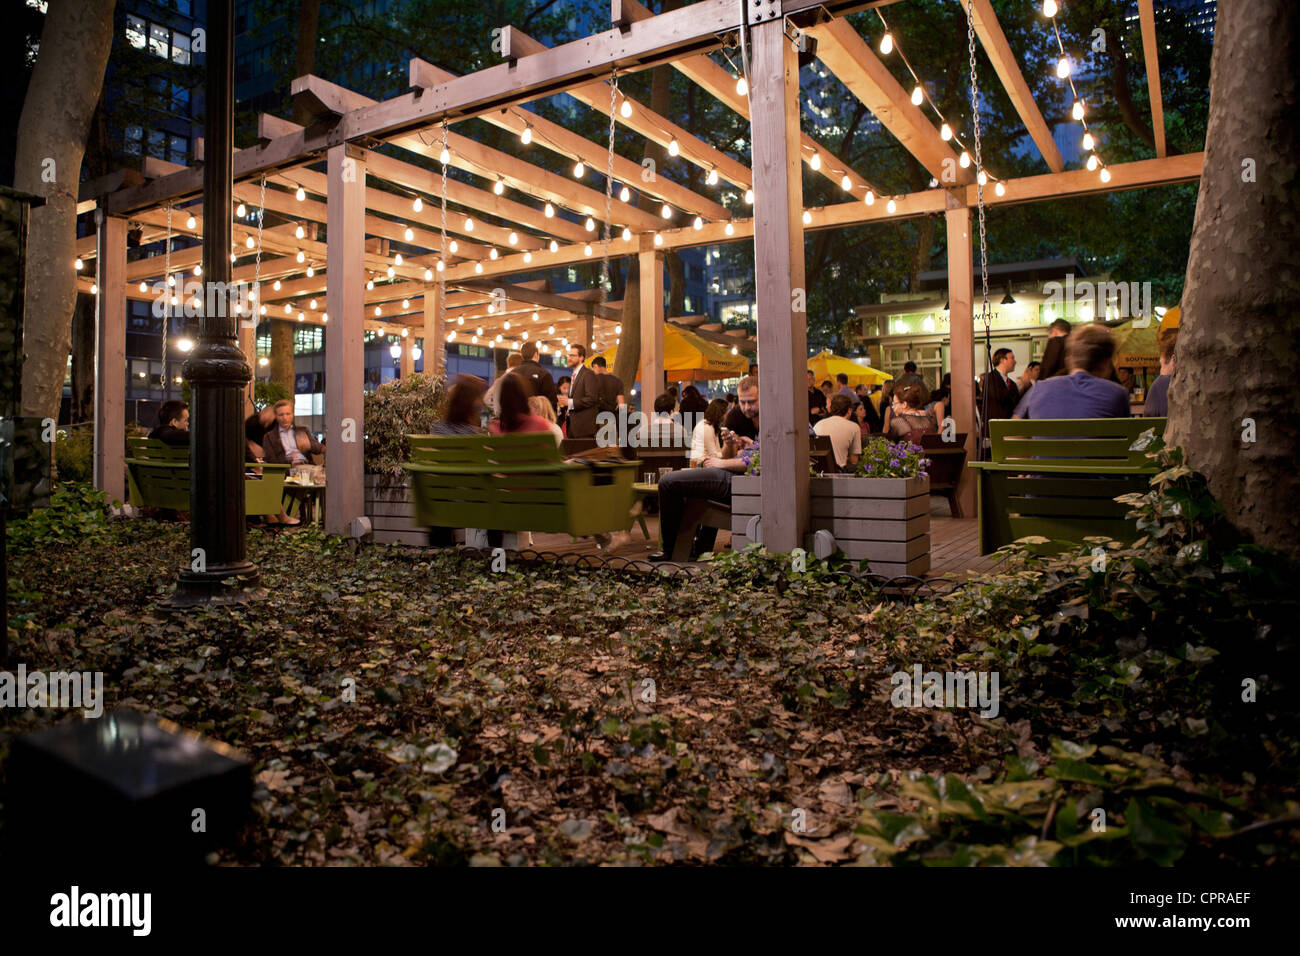 A wooden pergola lights up the Southwest Porch area of Bryant Park in New  York City. - A Wooden Pergola Lights Up The Southwest Porch Area Of Bryant Park